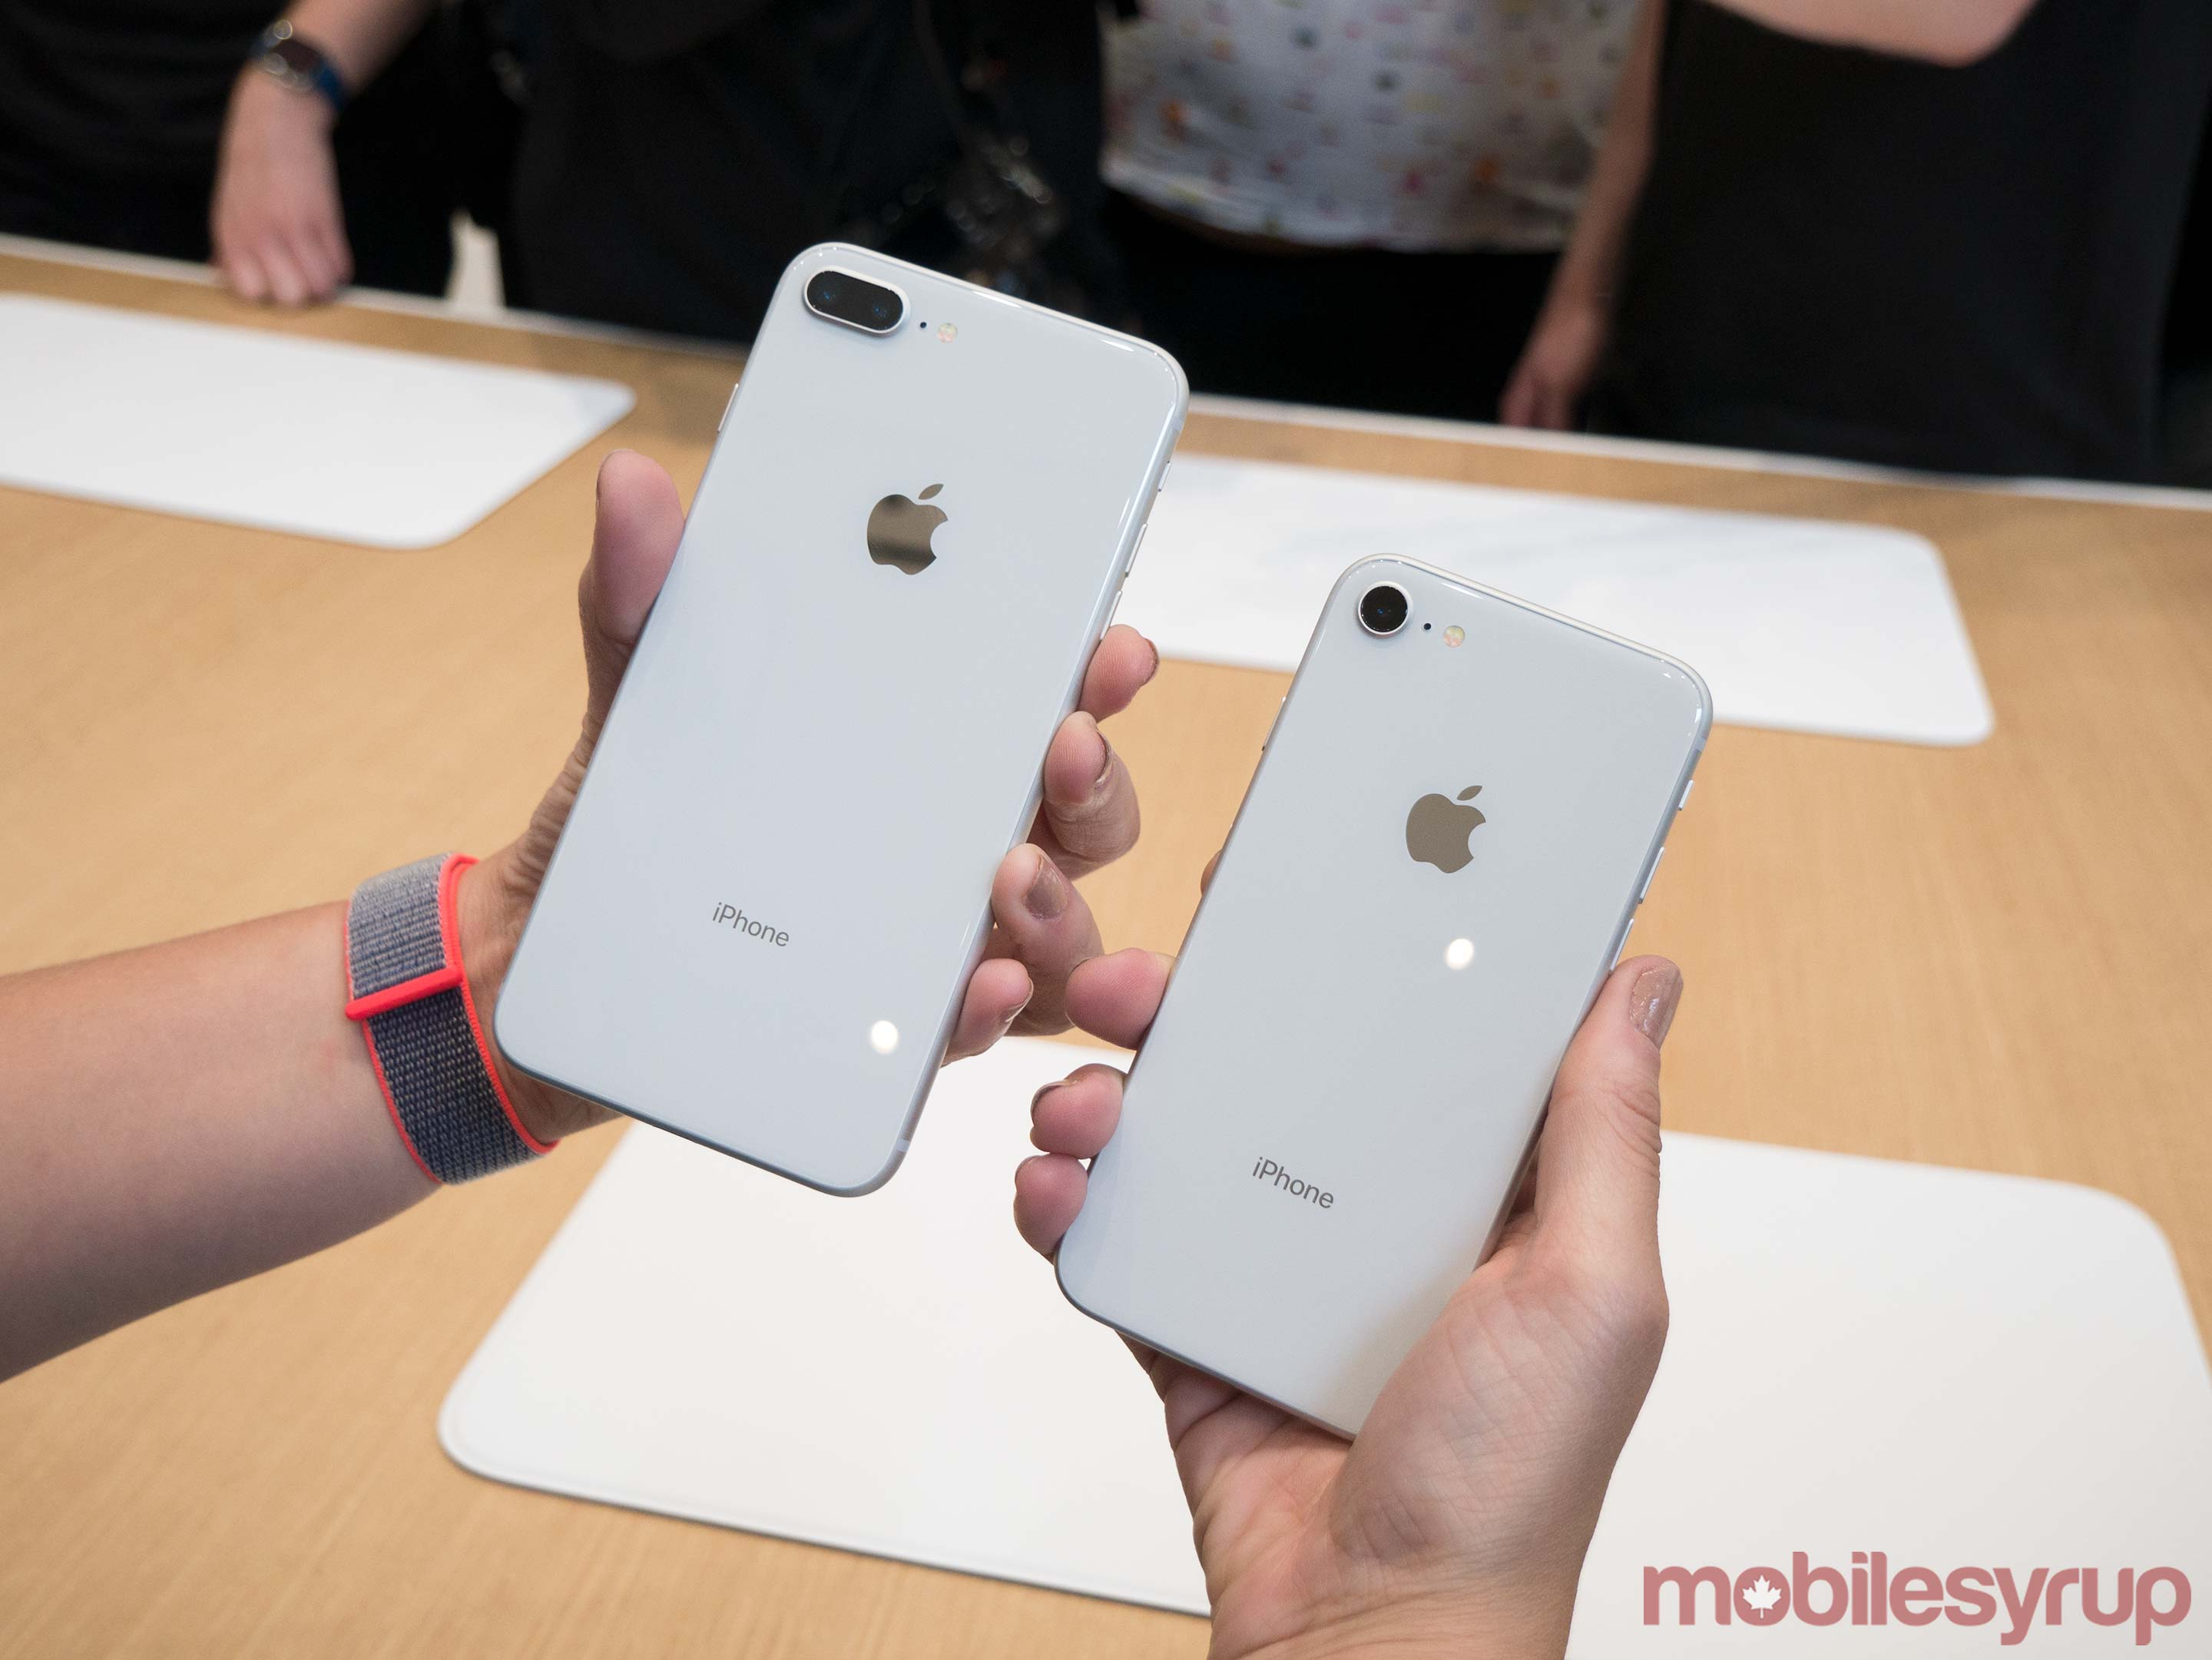 Comparison photo of the iPhone 8 Plus and iPhone 8